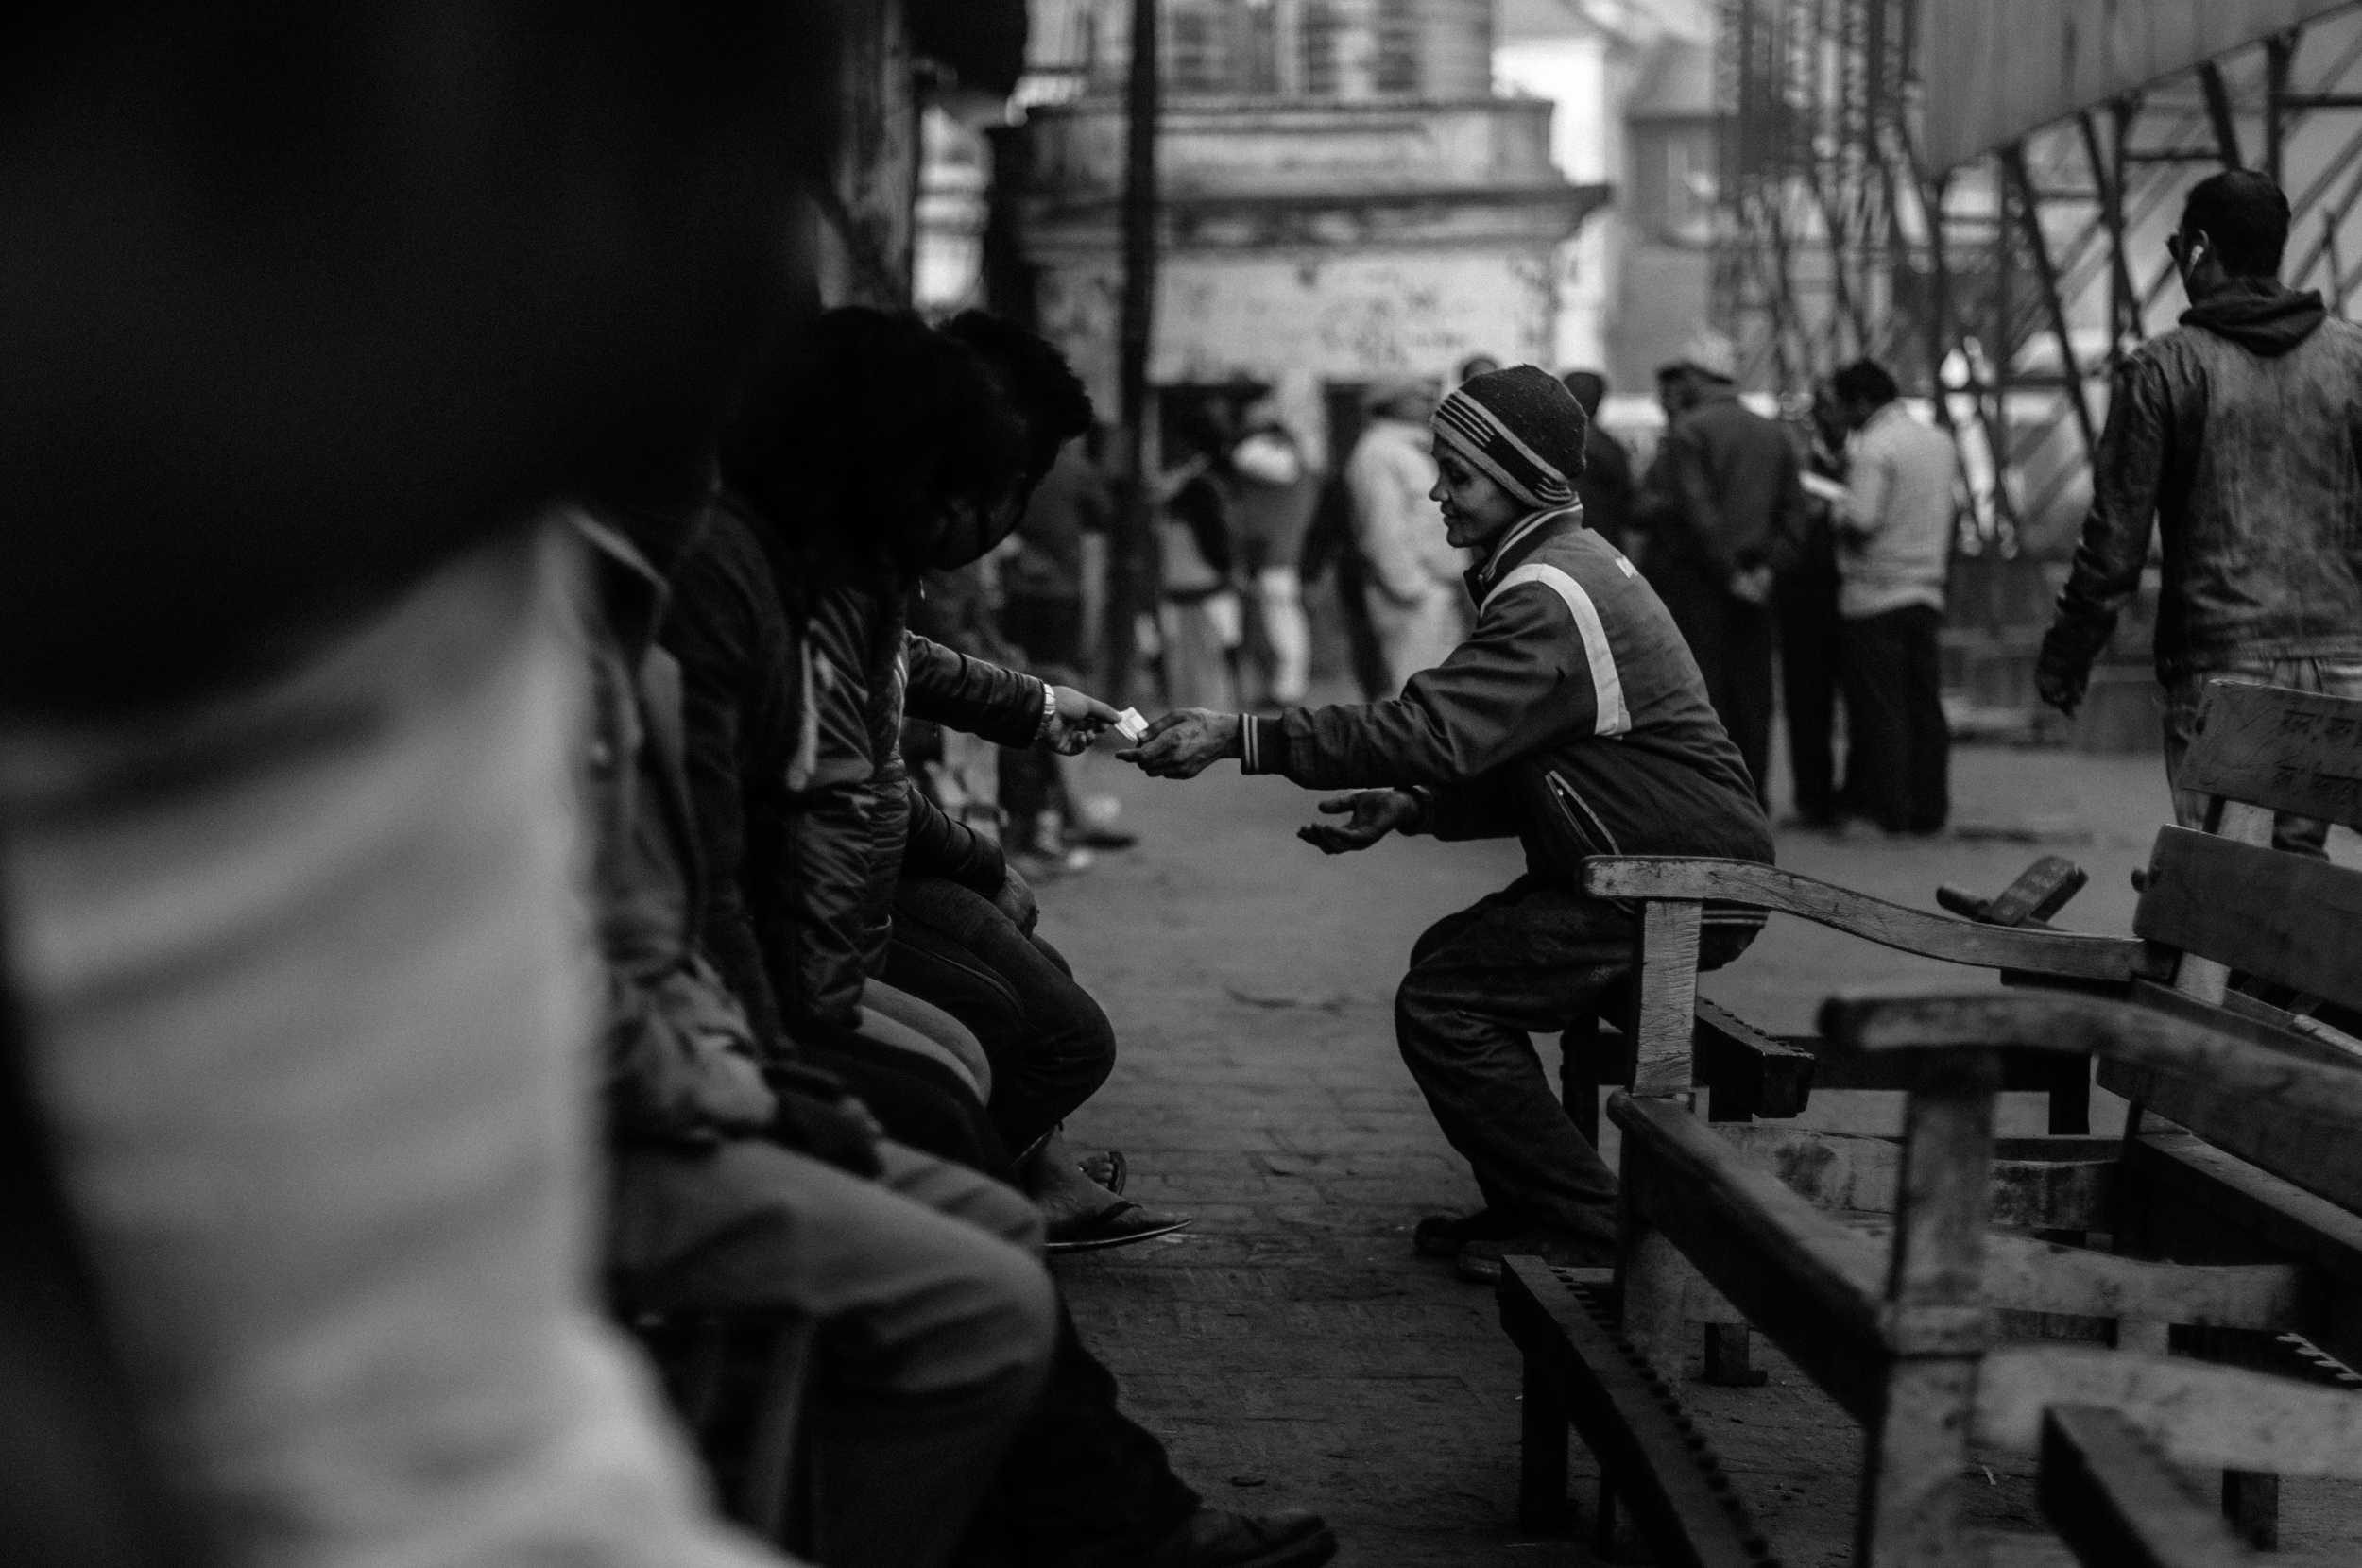 In the event that more wood is needed to finish the cremation, temple workers collect money from the family to pay for the additional materials.